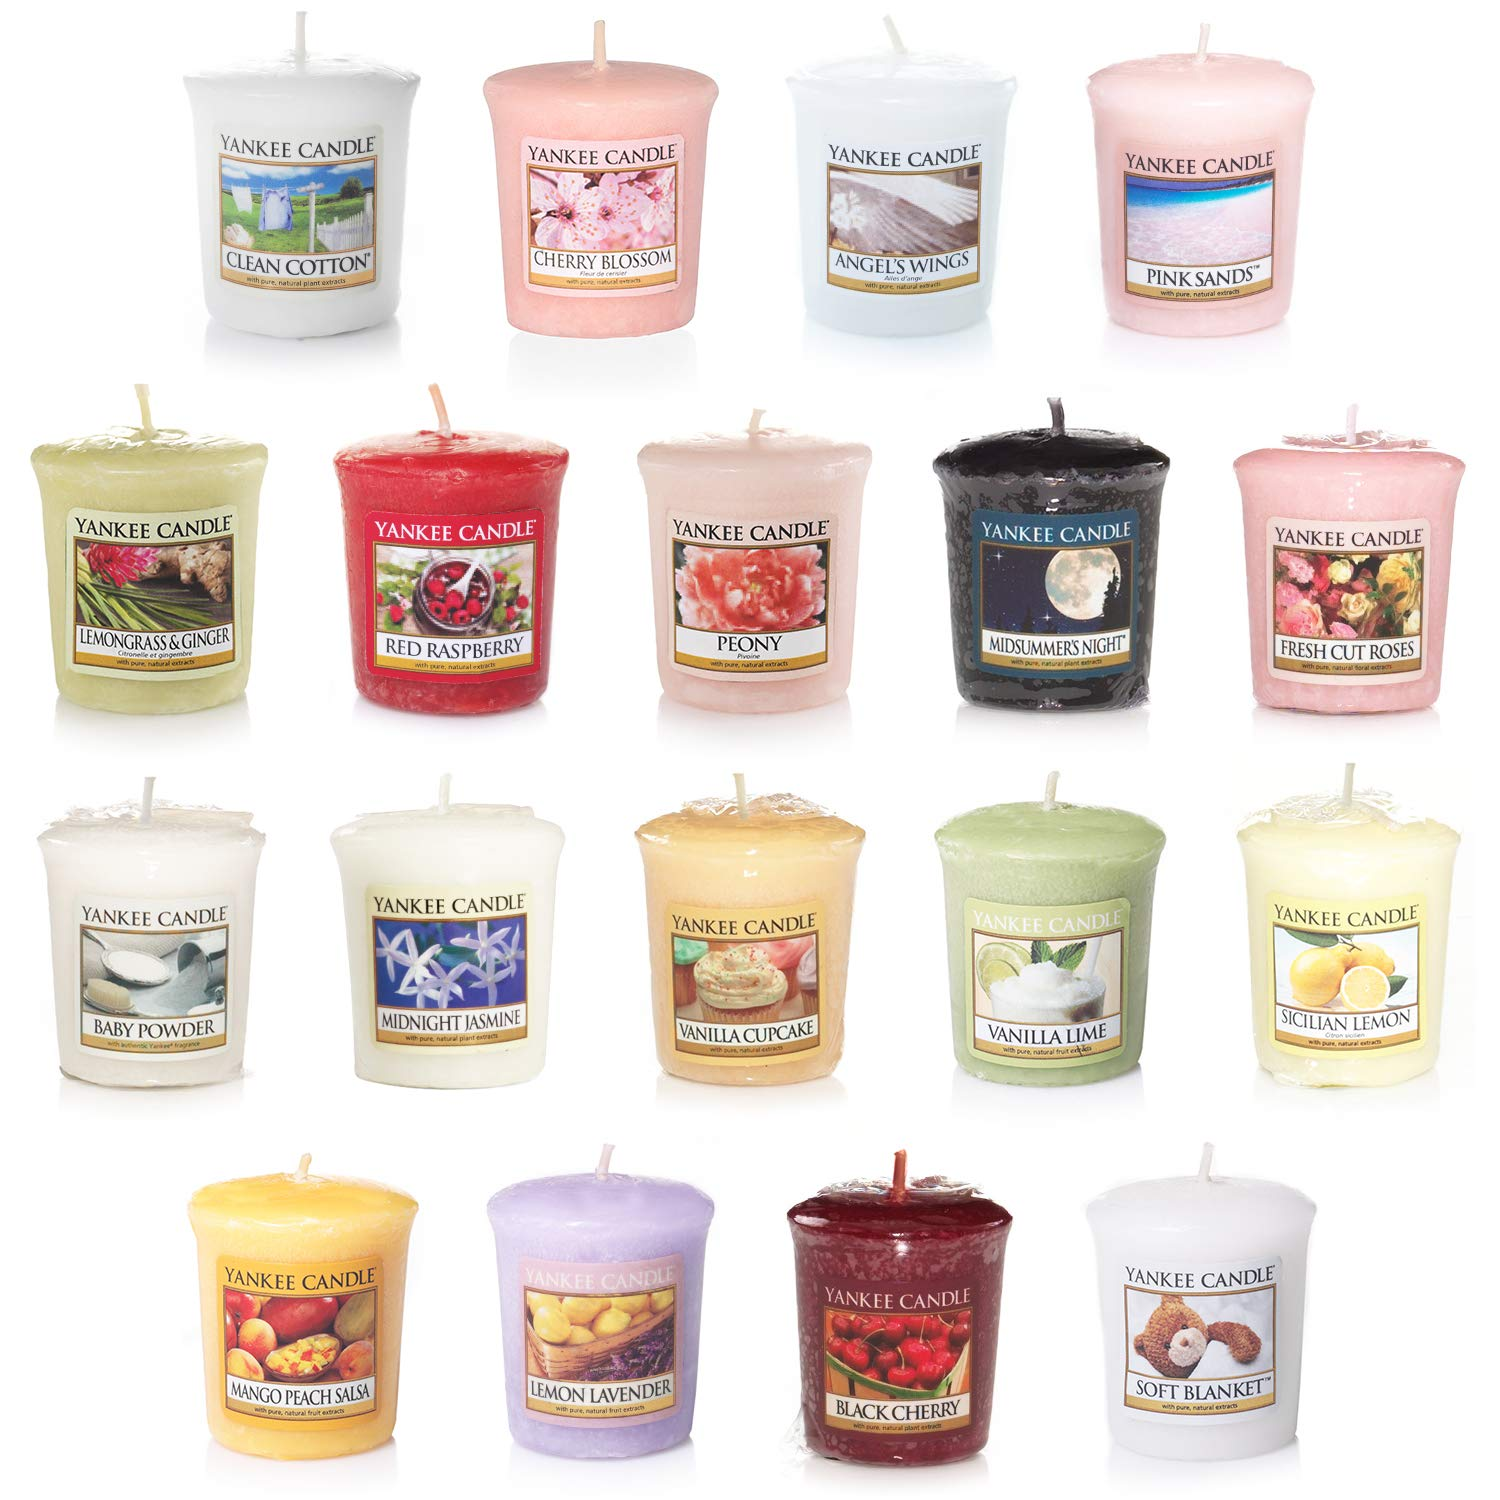 Yankee Candle Value Bundle with 18 Votive Scented Candles, Mixed Popular Fragrances